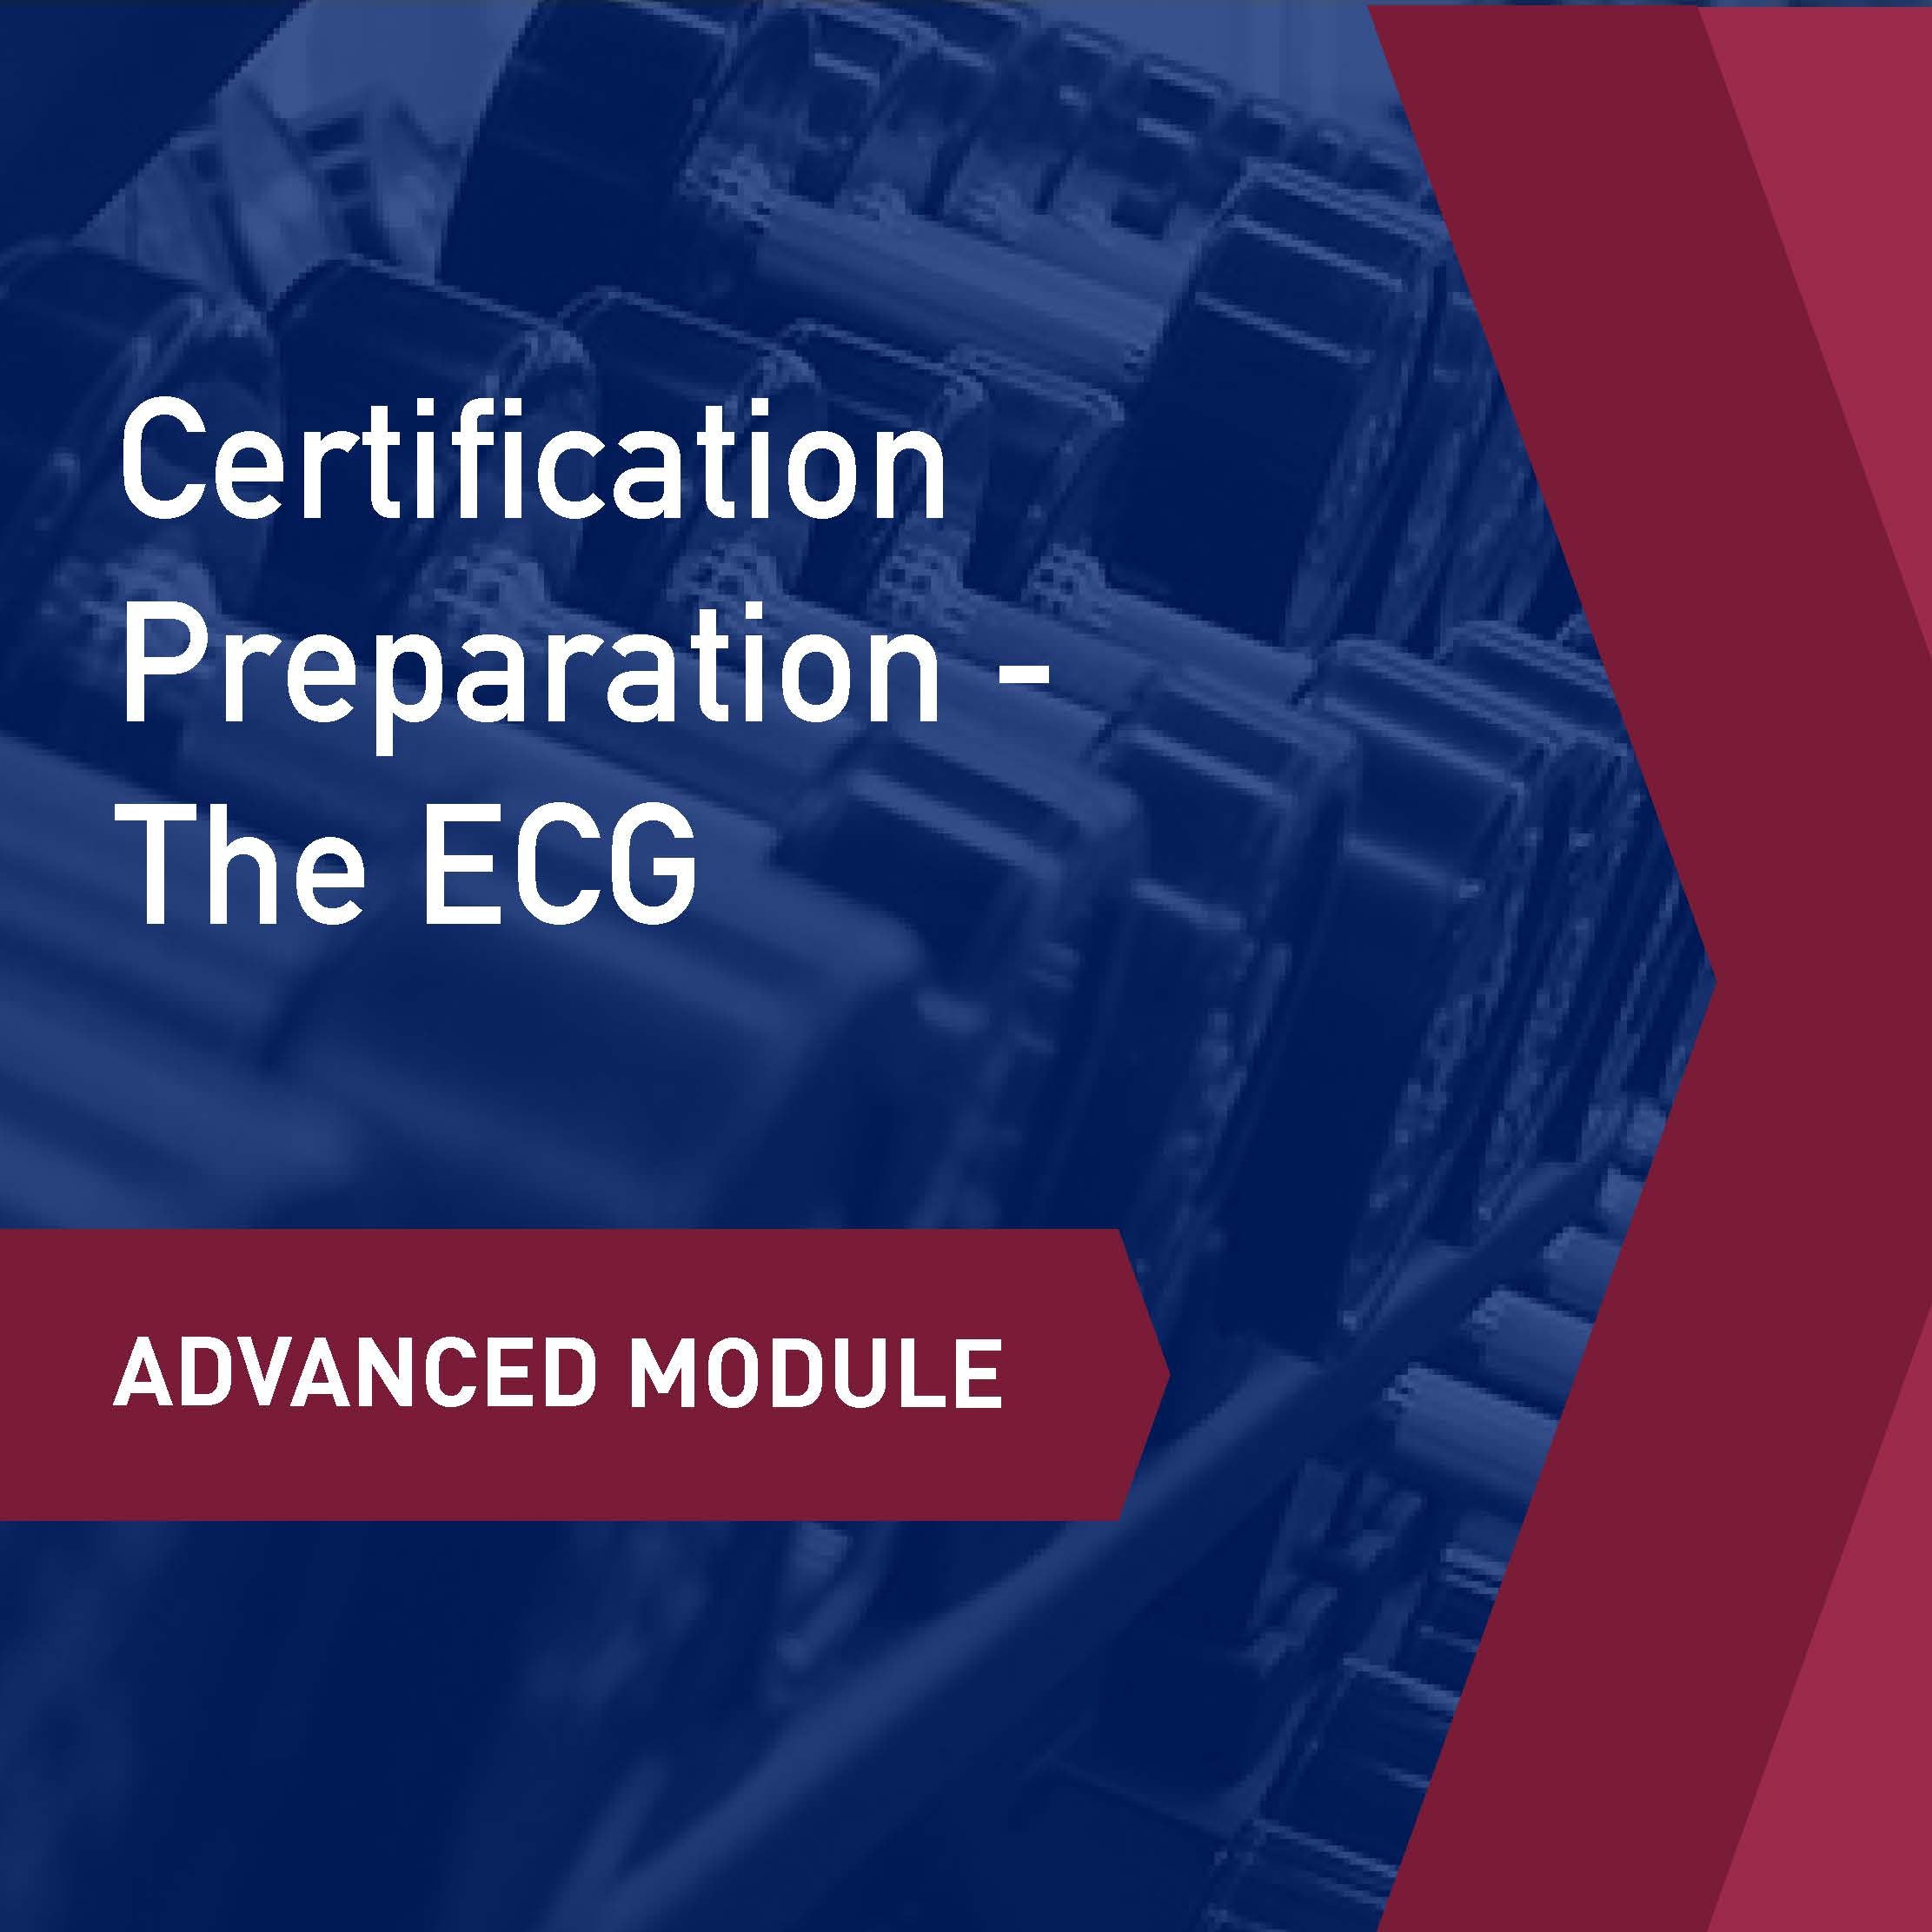 Advanced Learning Module: Certification Preparation - The ECG